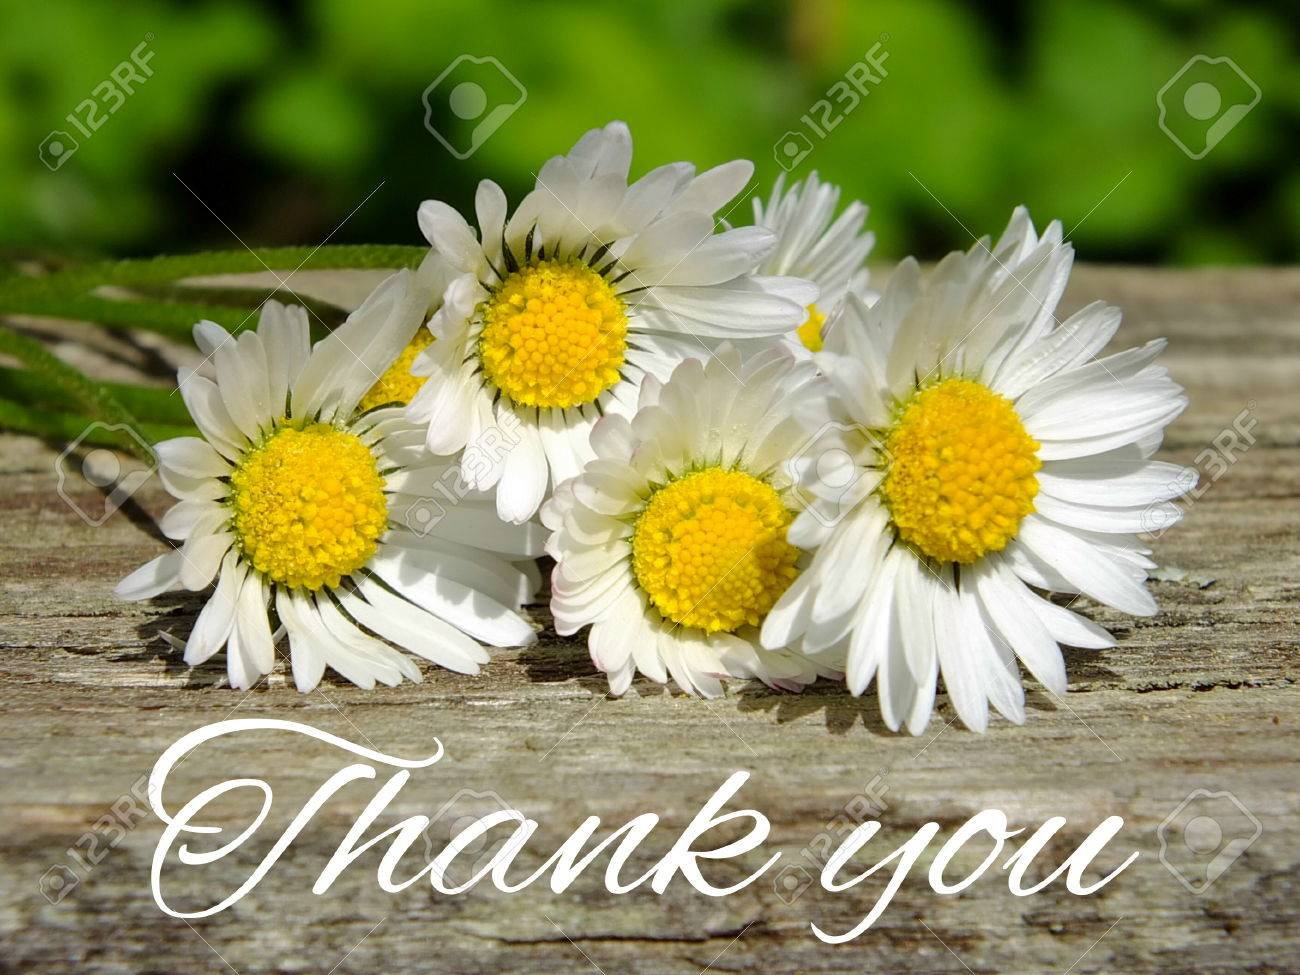 Image of daisies with lettering thank you Standard-Bild - 35143391